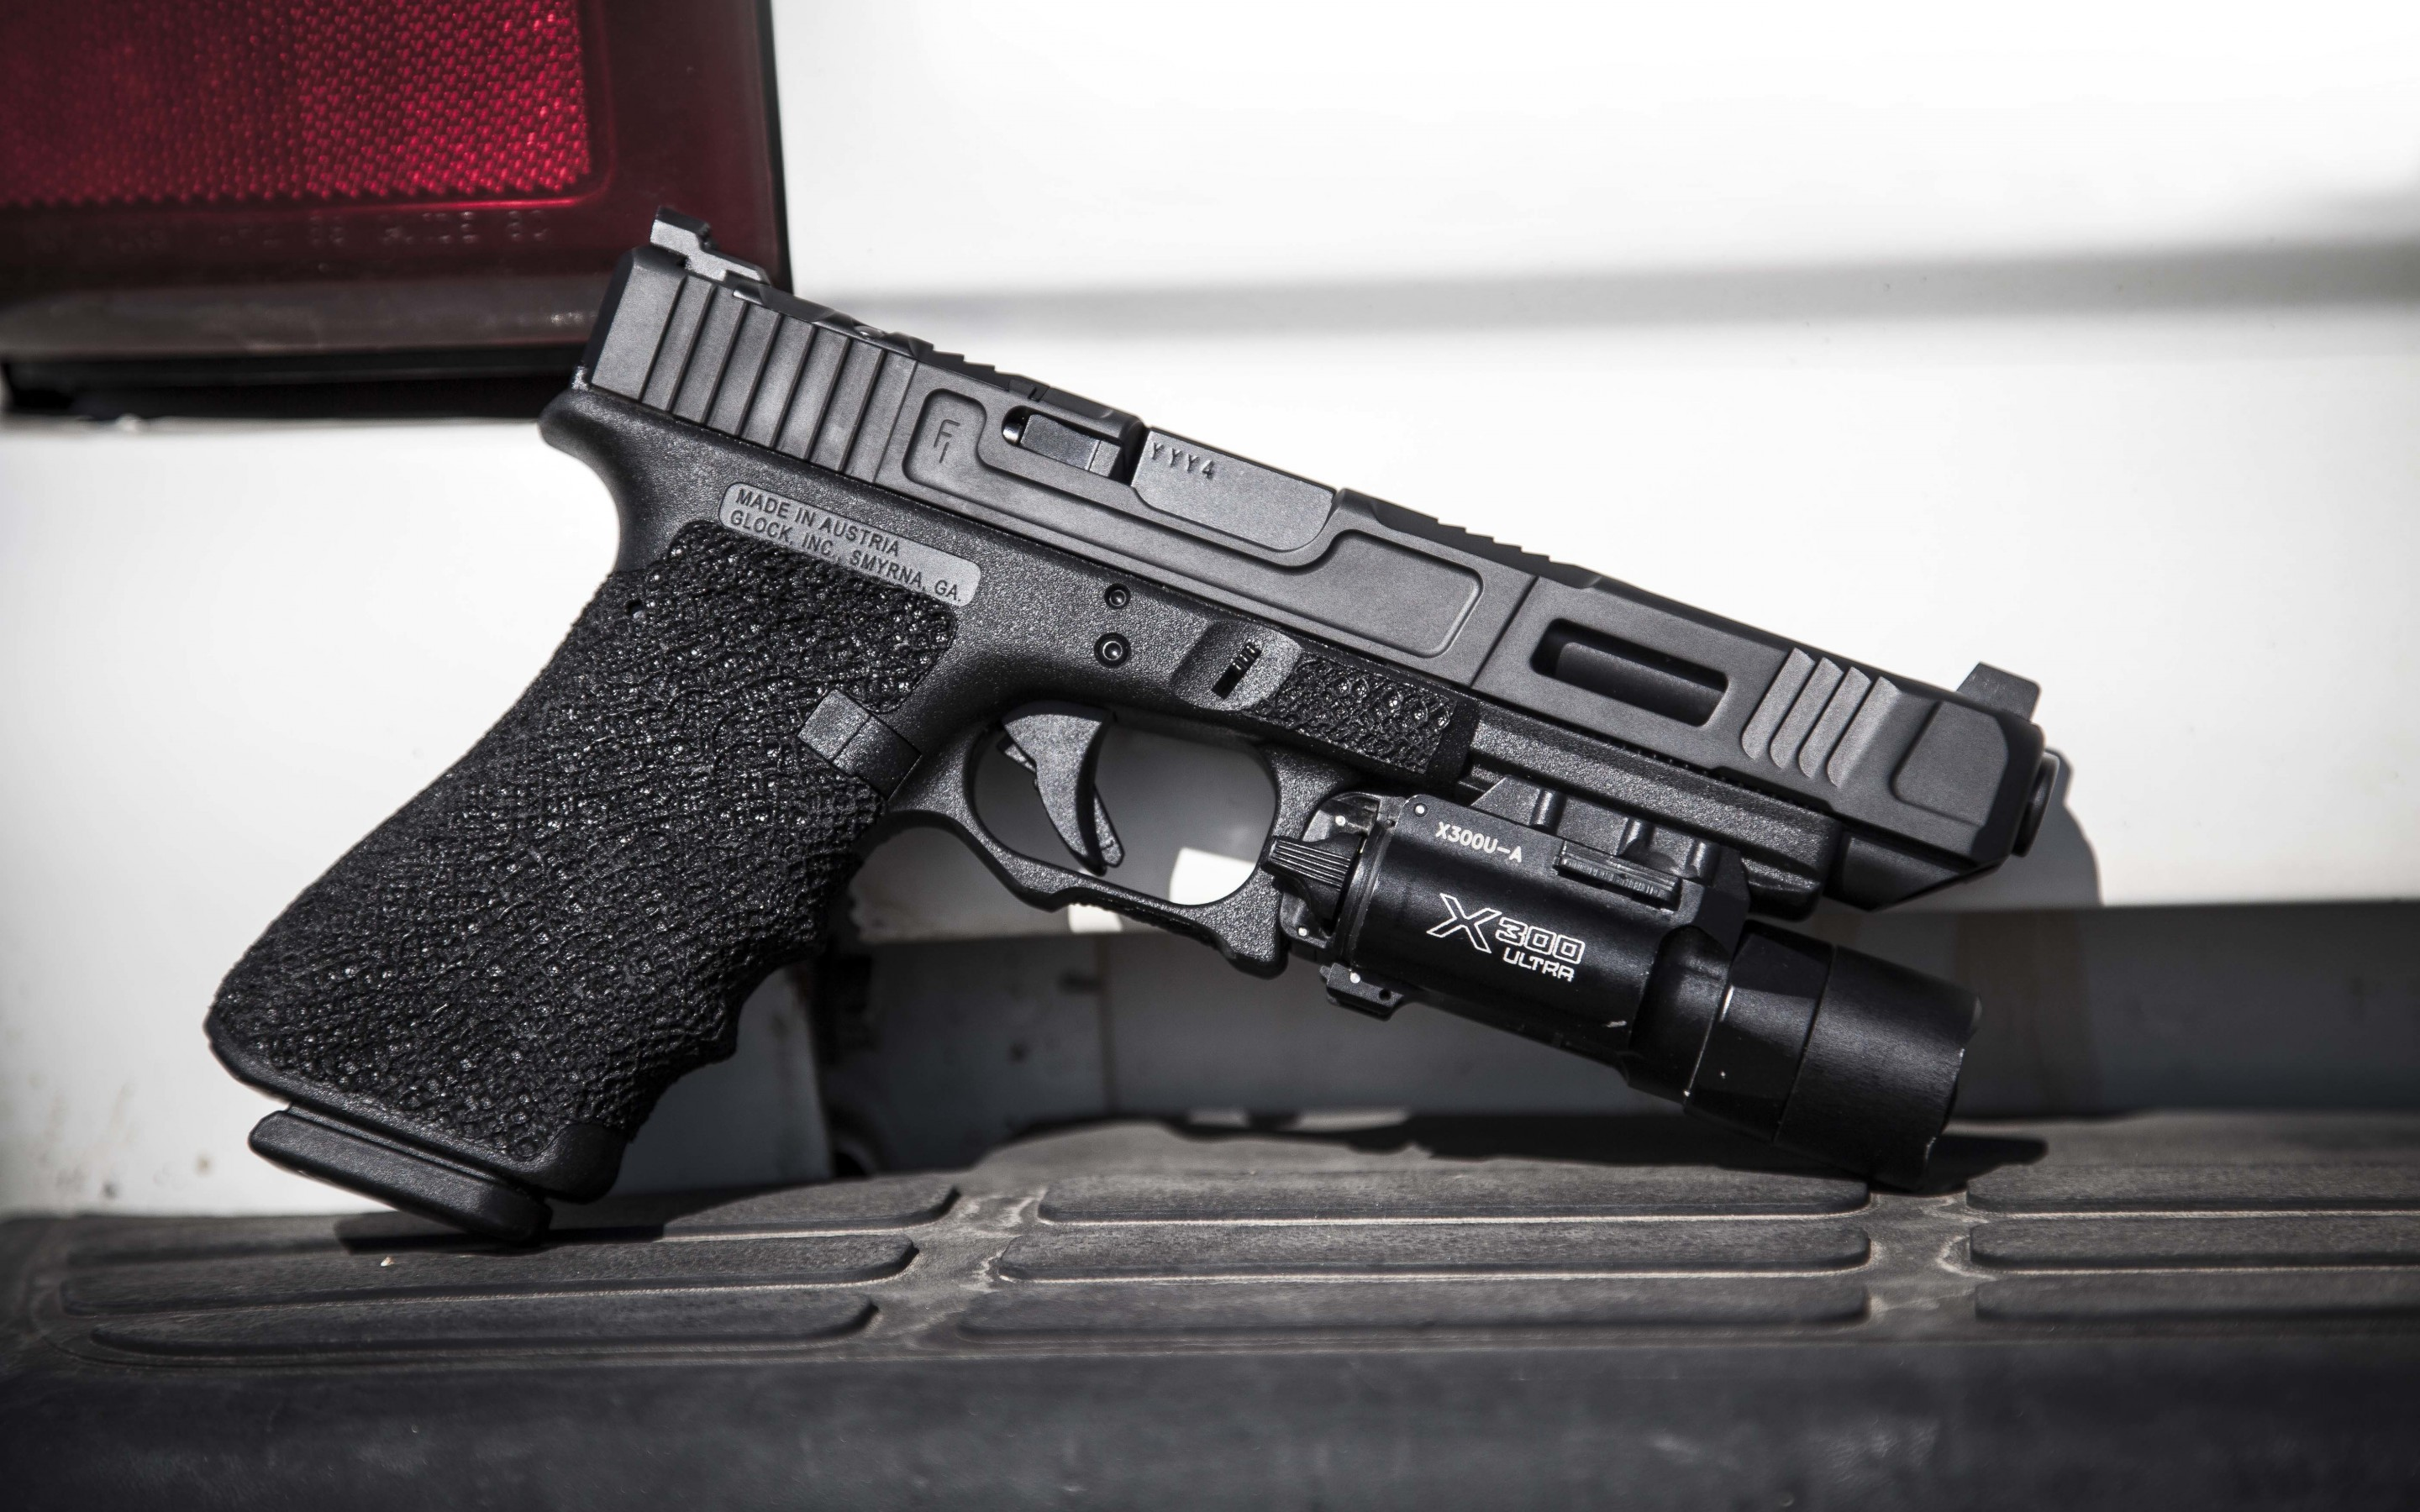 Res: 2880x1800, Glock 34 Austria Weapon (click to view)